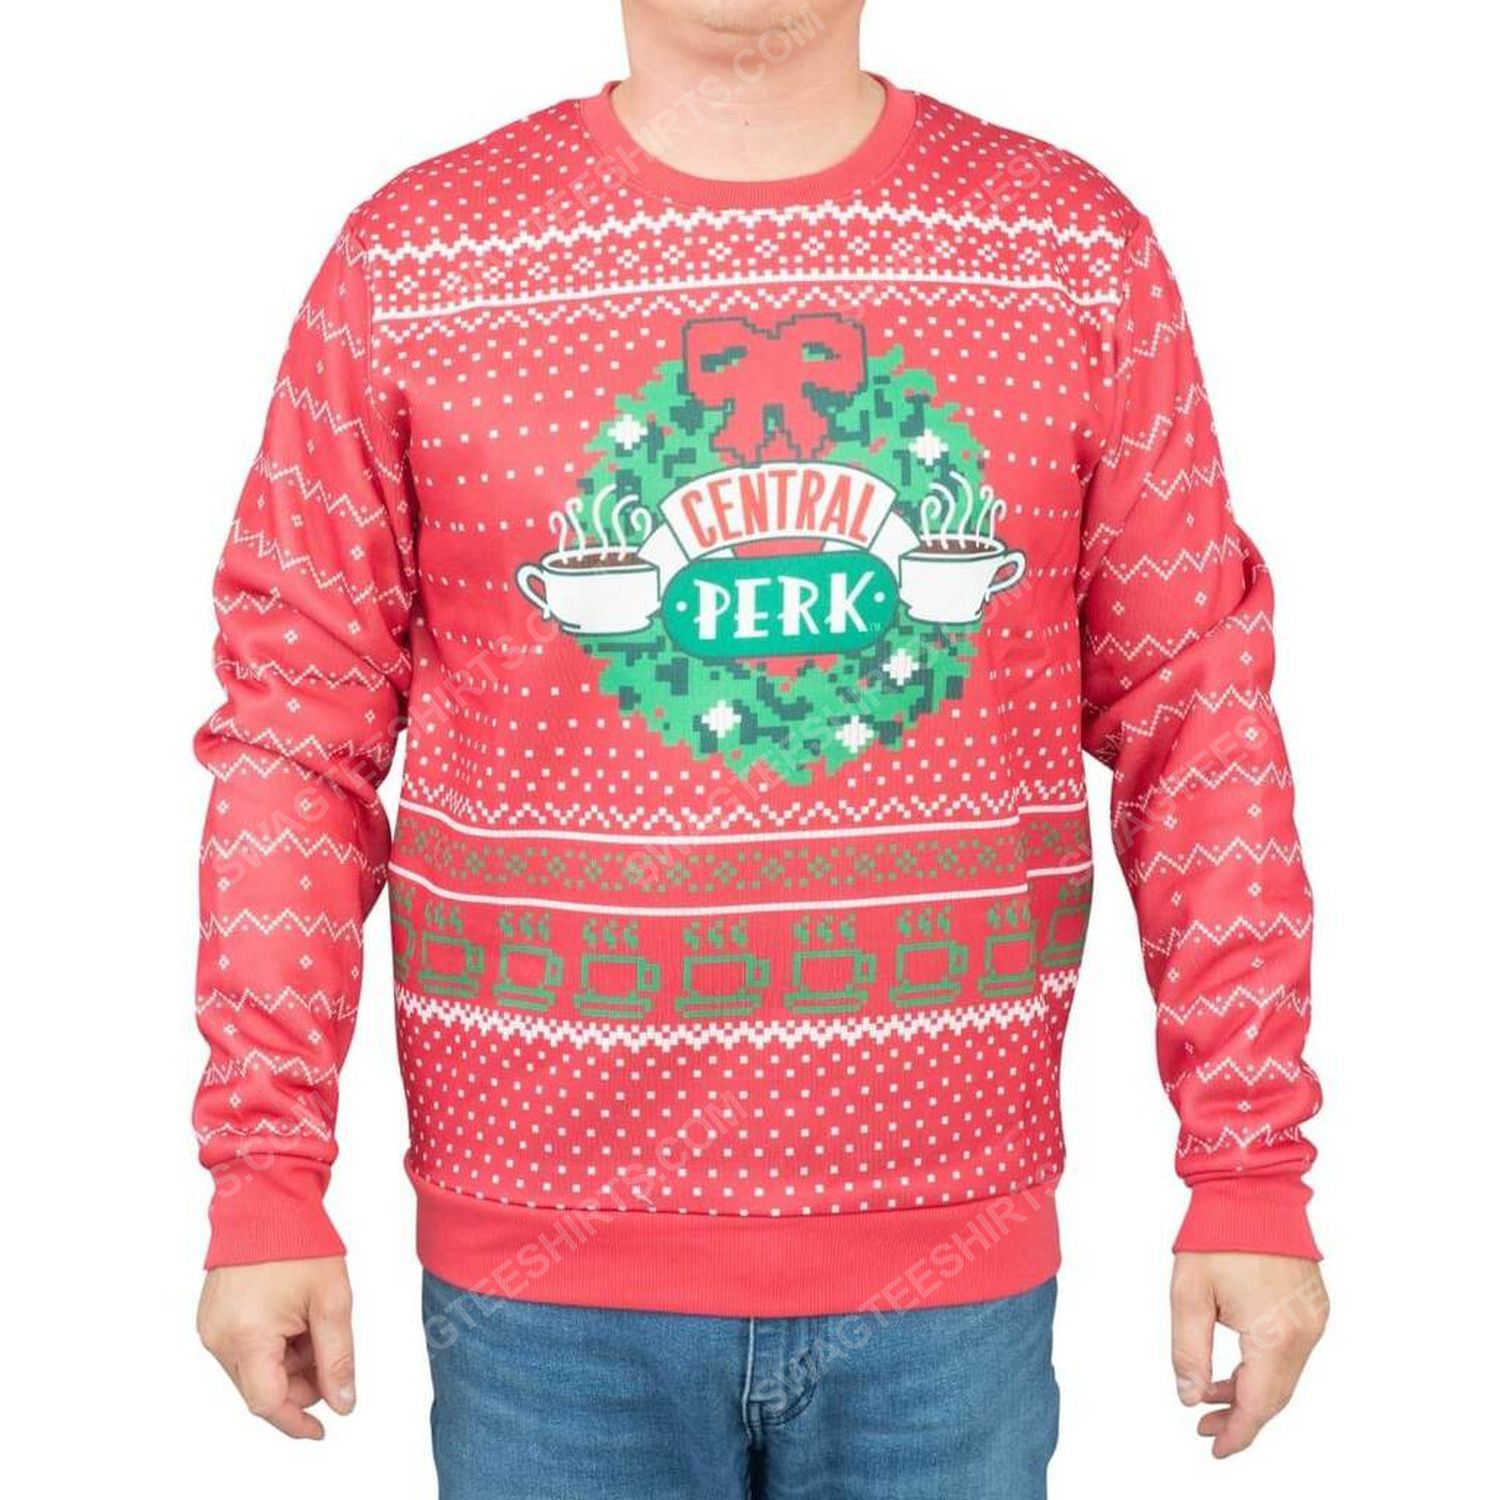 TV show friends central perk full print ugly christmas sweater 2